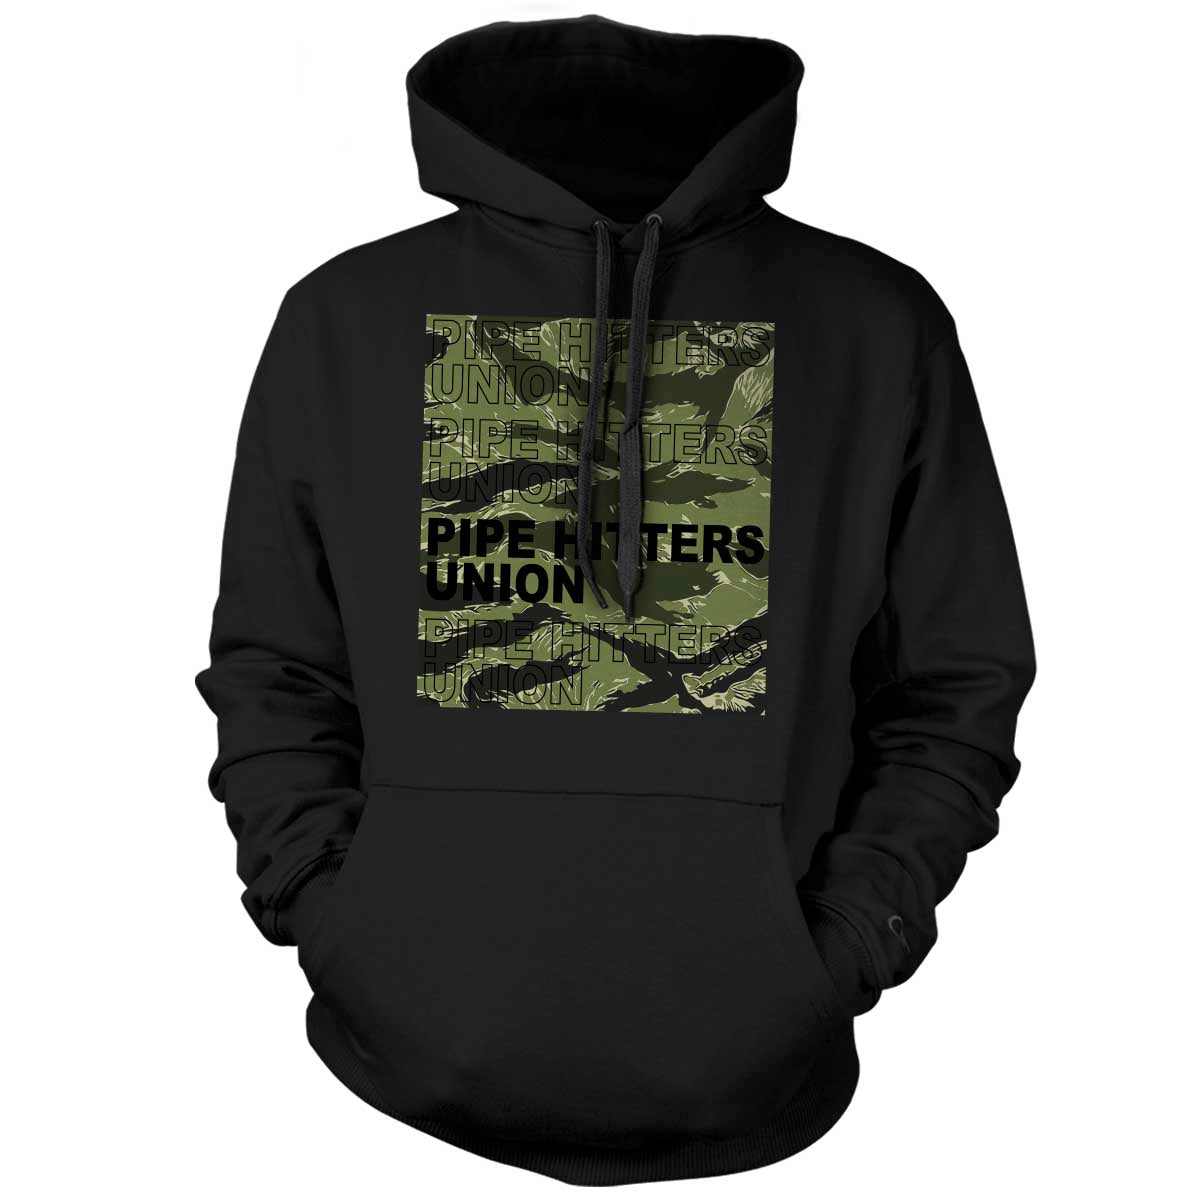 Pipe Hitter Pattern Analysis - Hoodie - Black/Green Tigerstripe - T-Shirts - Pipe Hitters Union